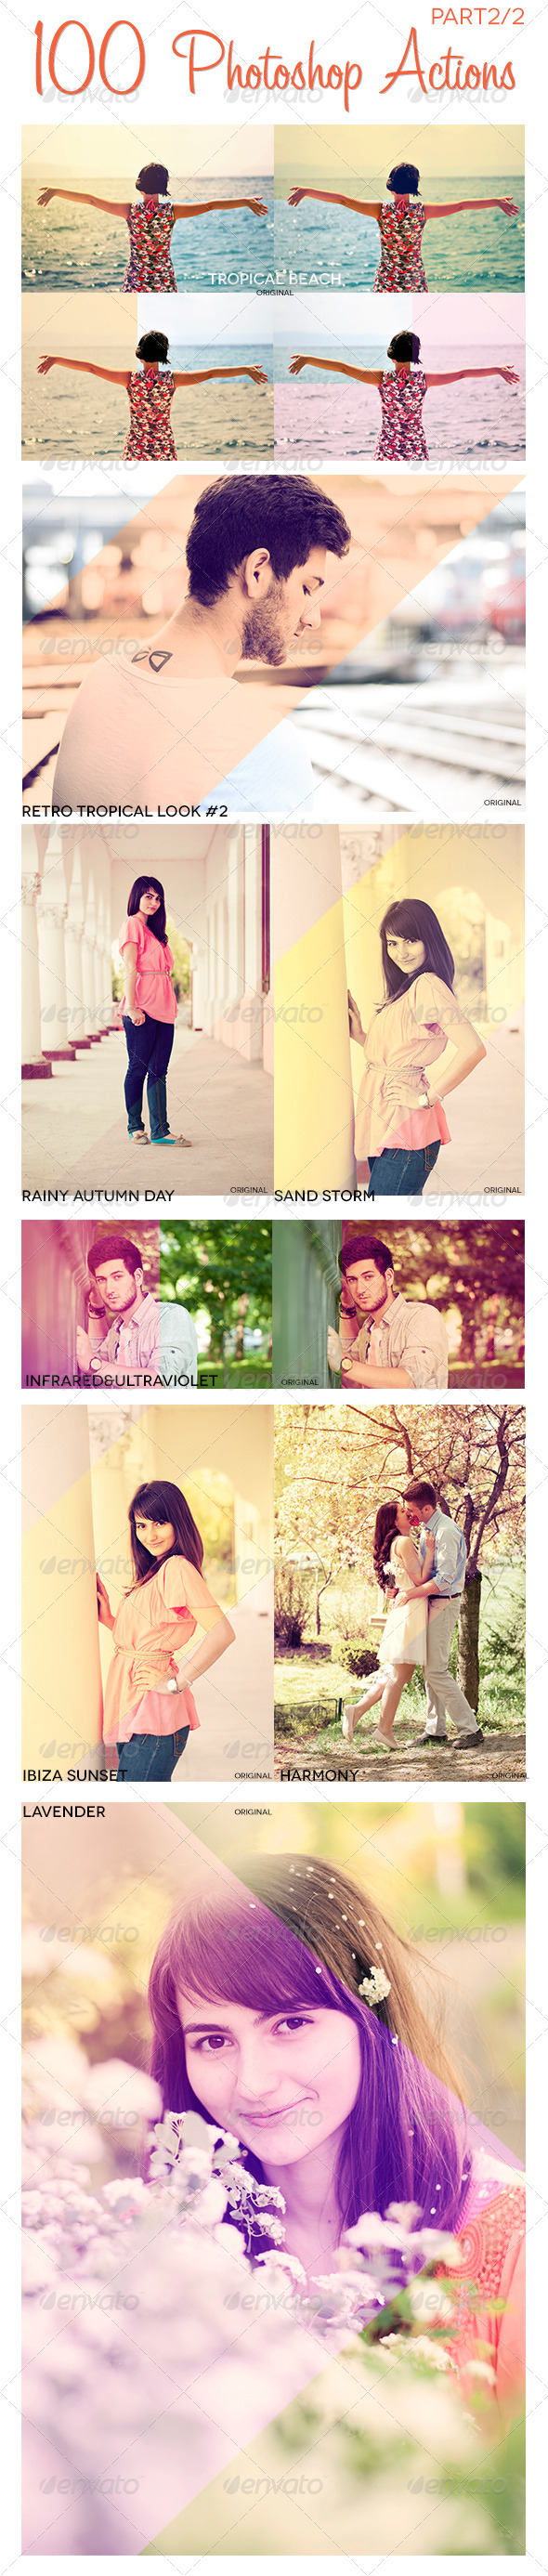 GraphicRiver 100 Photoshop Actions Photo Effects Part 2 4960821